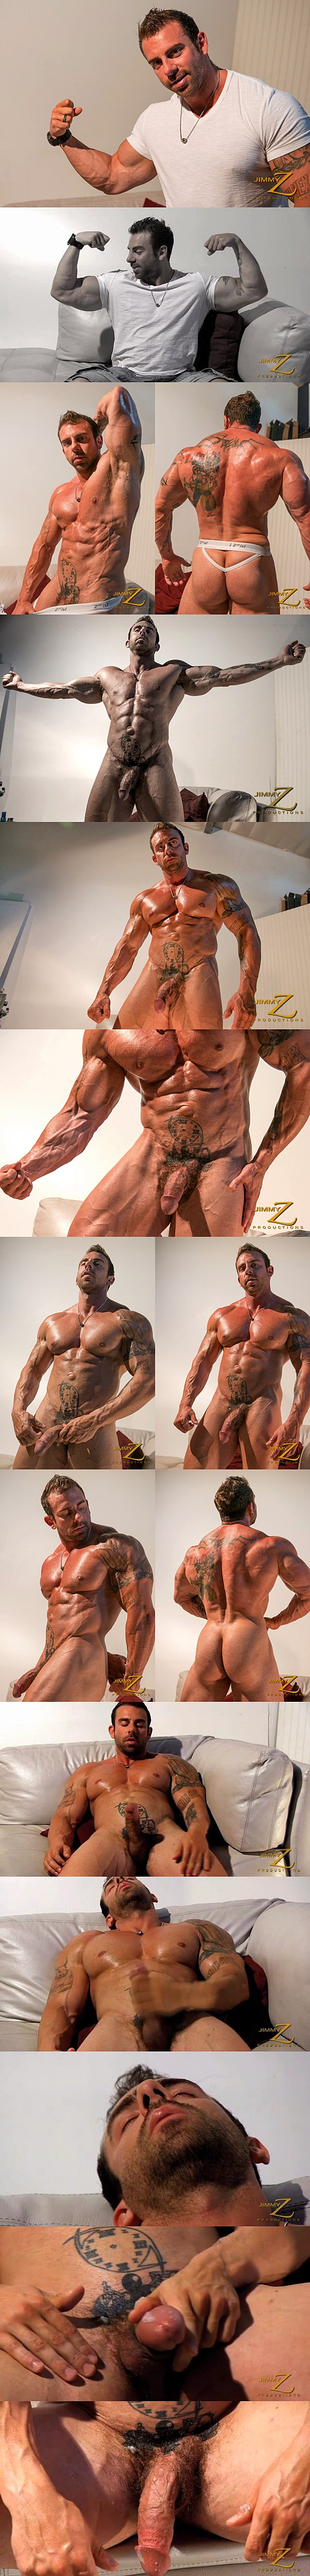 Beefy hairy muscle hunk Xavier shows off his hard muscles and shoots a thick load of cum in Give Me The Money at Jimmyzproductions 01